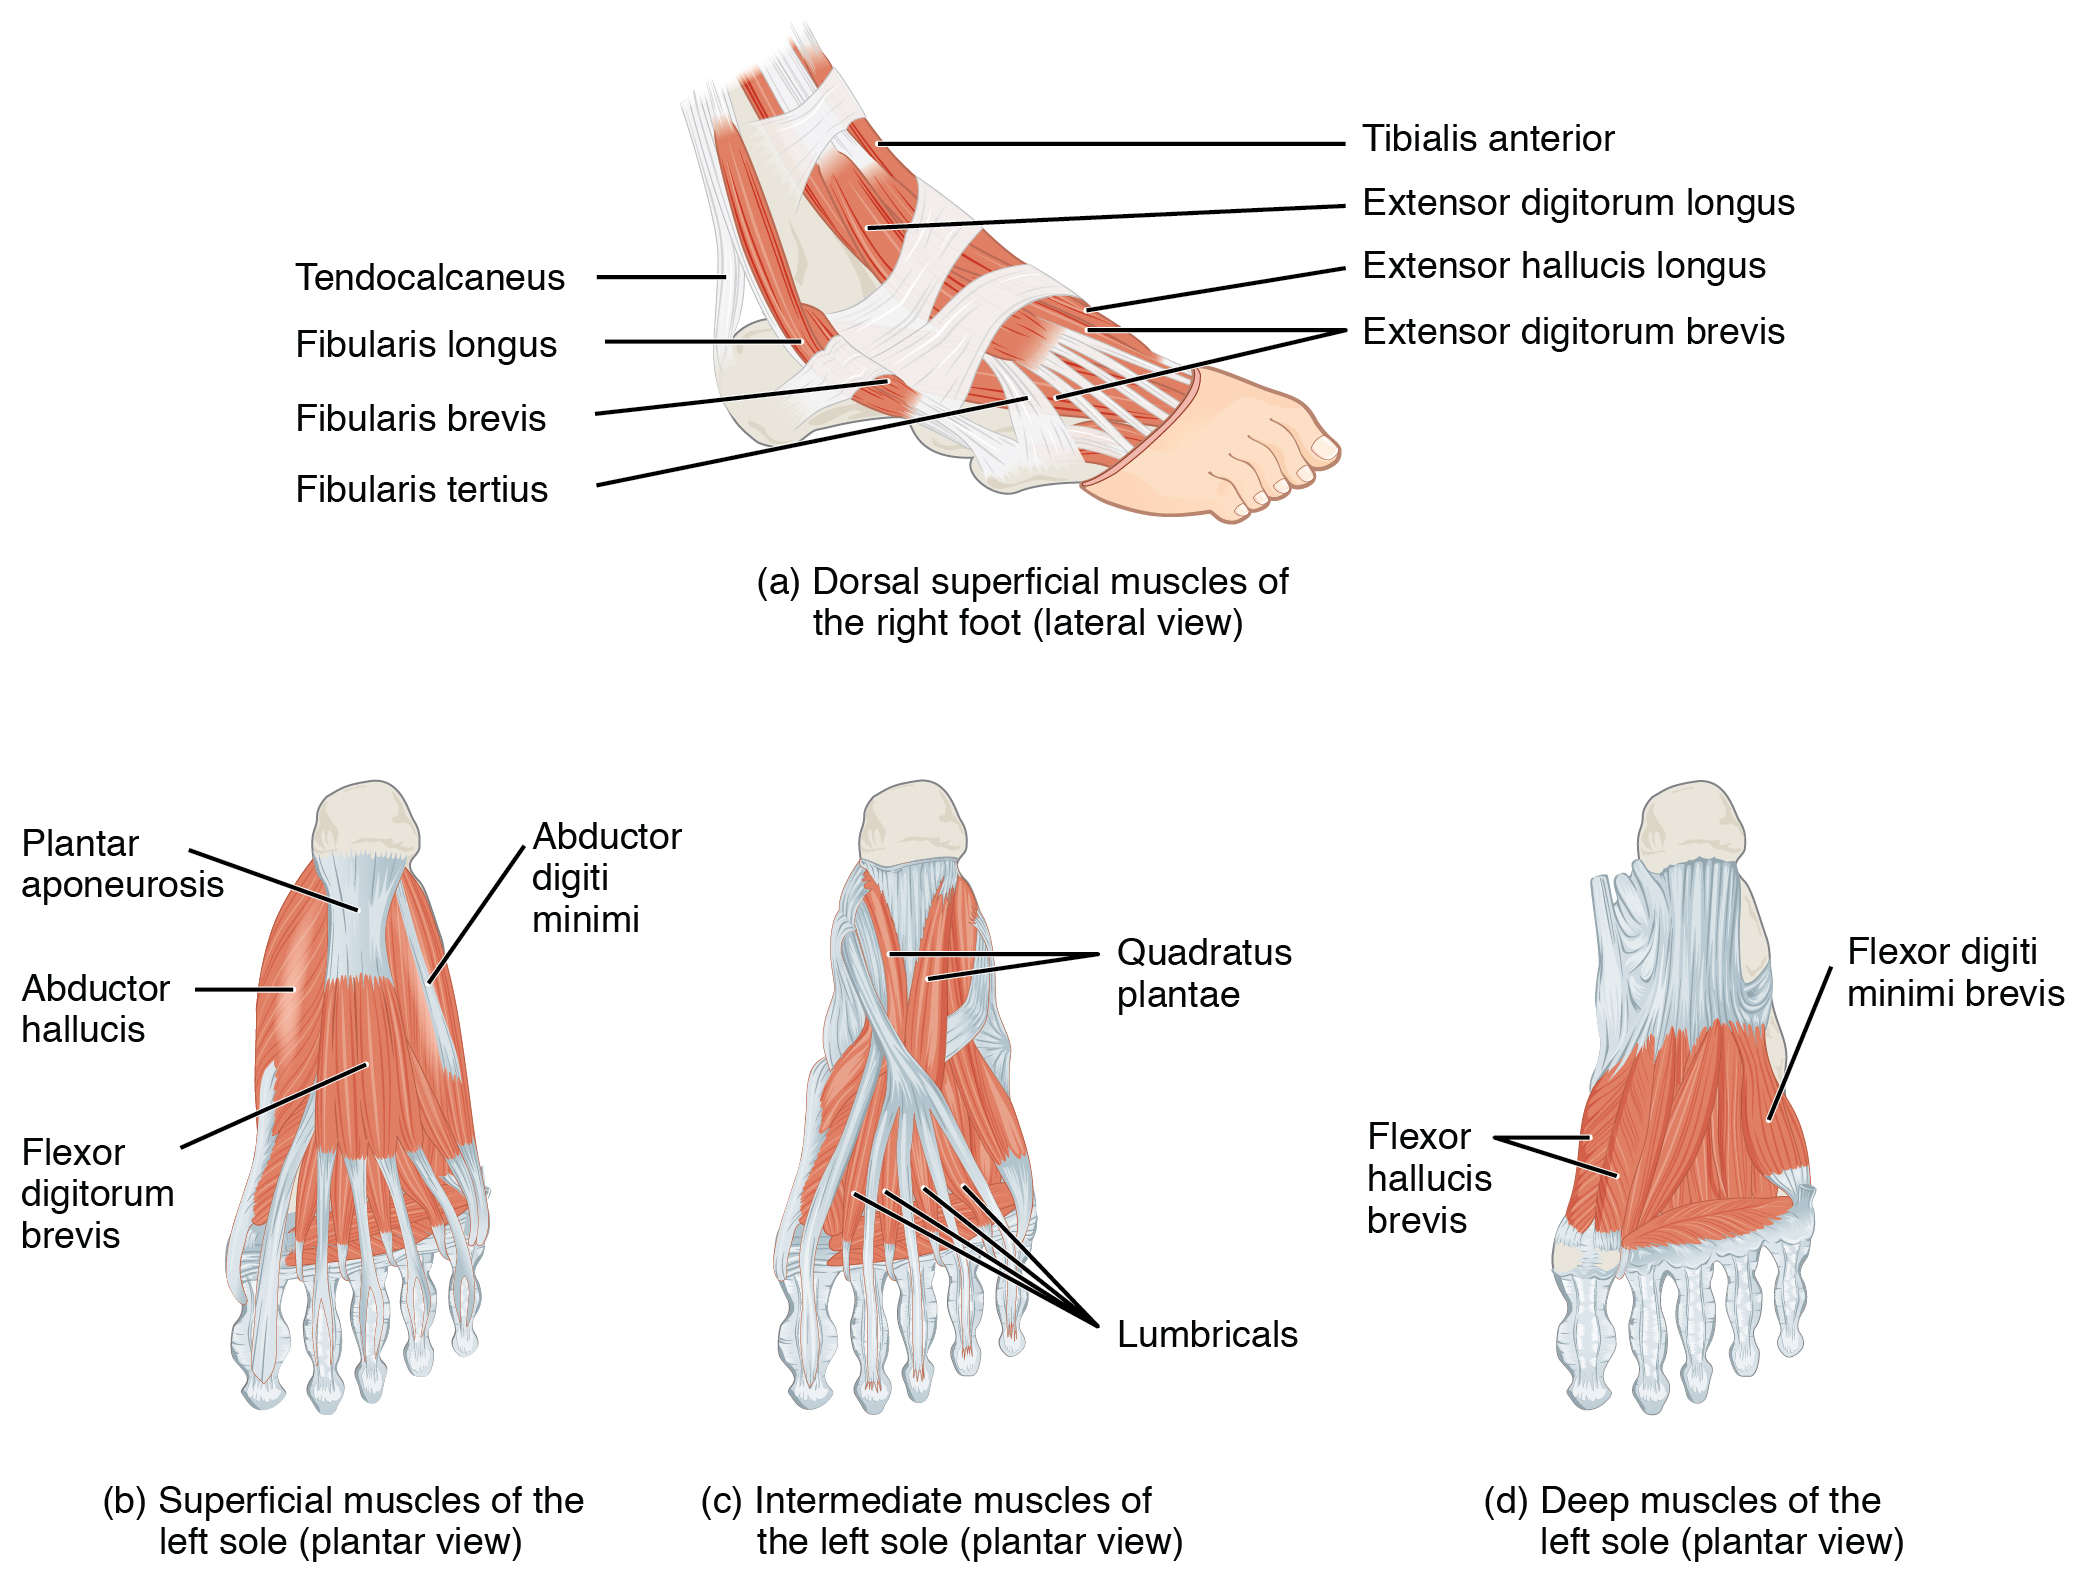 File:1124 Intrinsic Muscles of the Foot.jpg - Wikimedia Commons